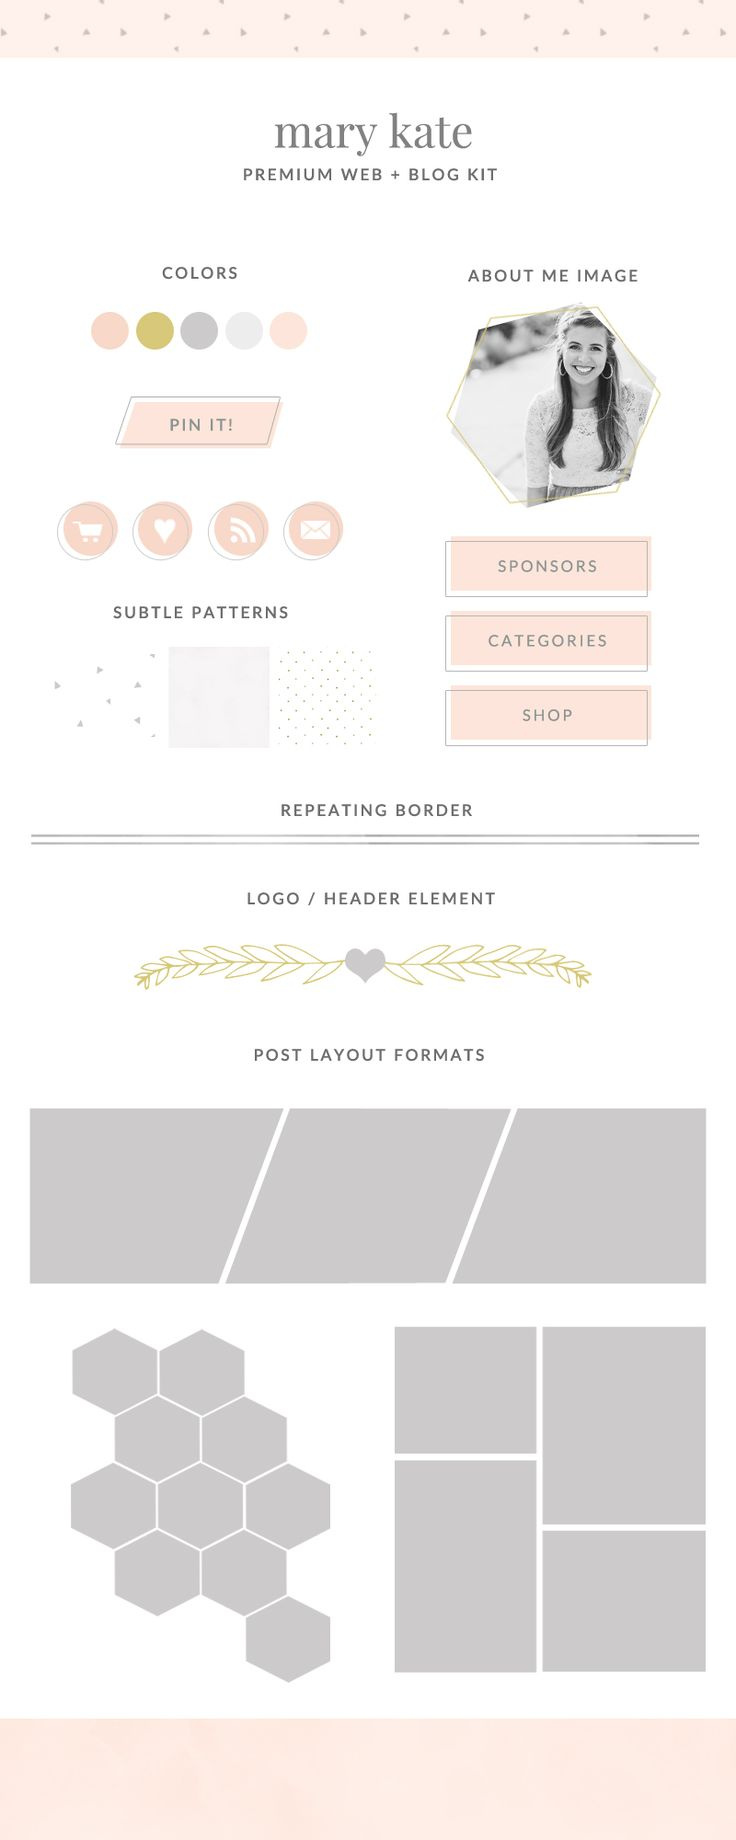 This Cute, Feminine Premade Blog Kit, The Mary Kate, is Simple and Sweet. Perfect to Make Your Blog Shine! Premade Blog Kit Elements Included.